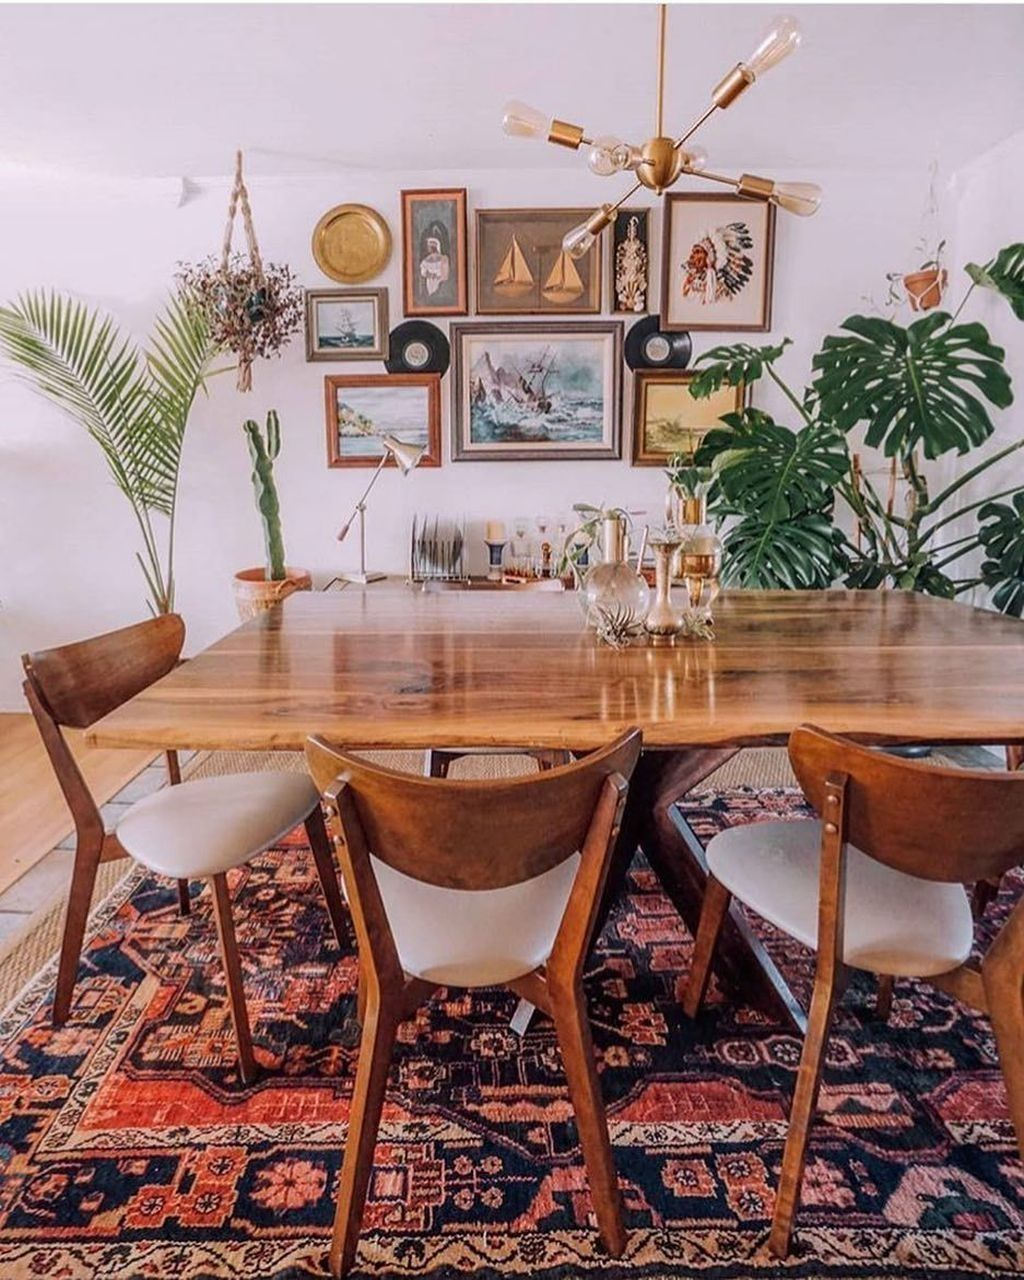 Elegant Tableware For Dining Rooms With Style: 20+ Unordinary Dining Room Design Ideas With Bohemian